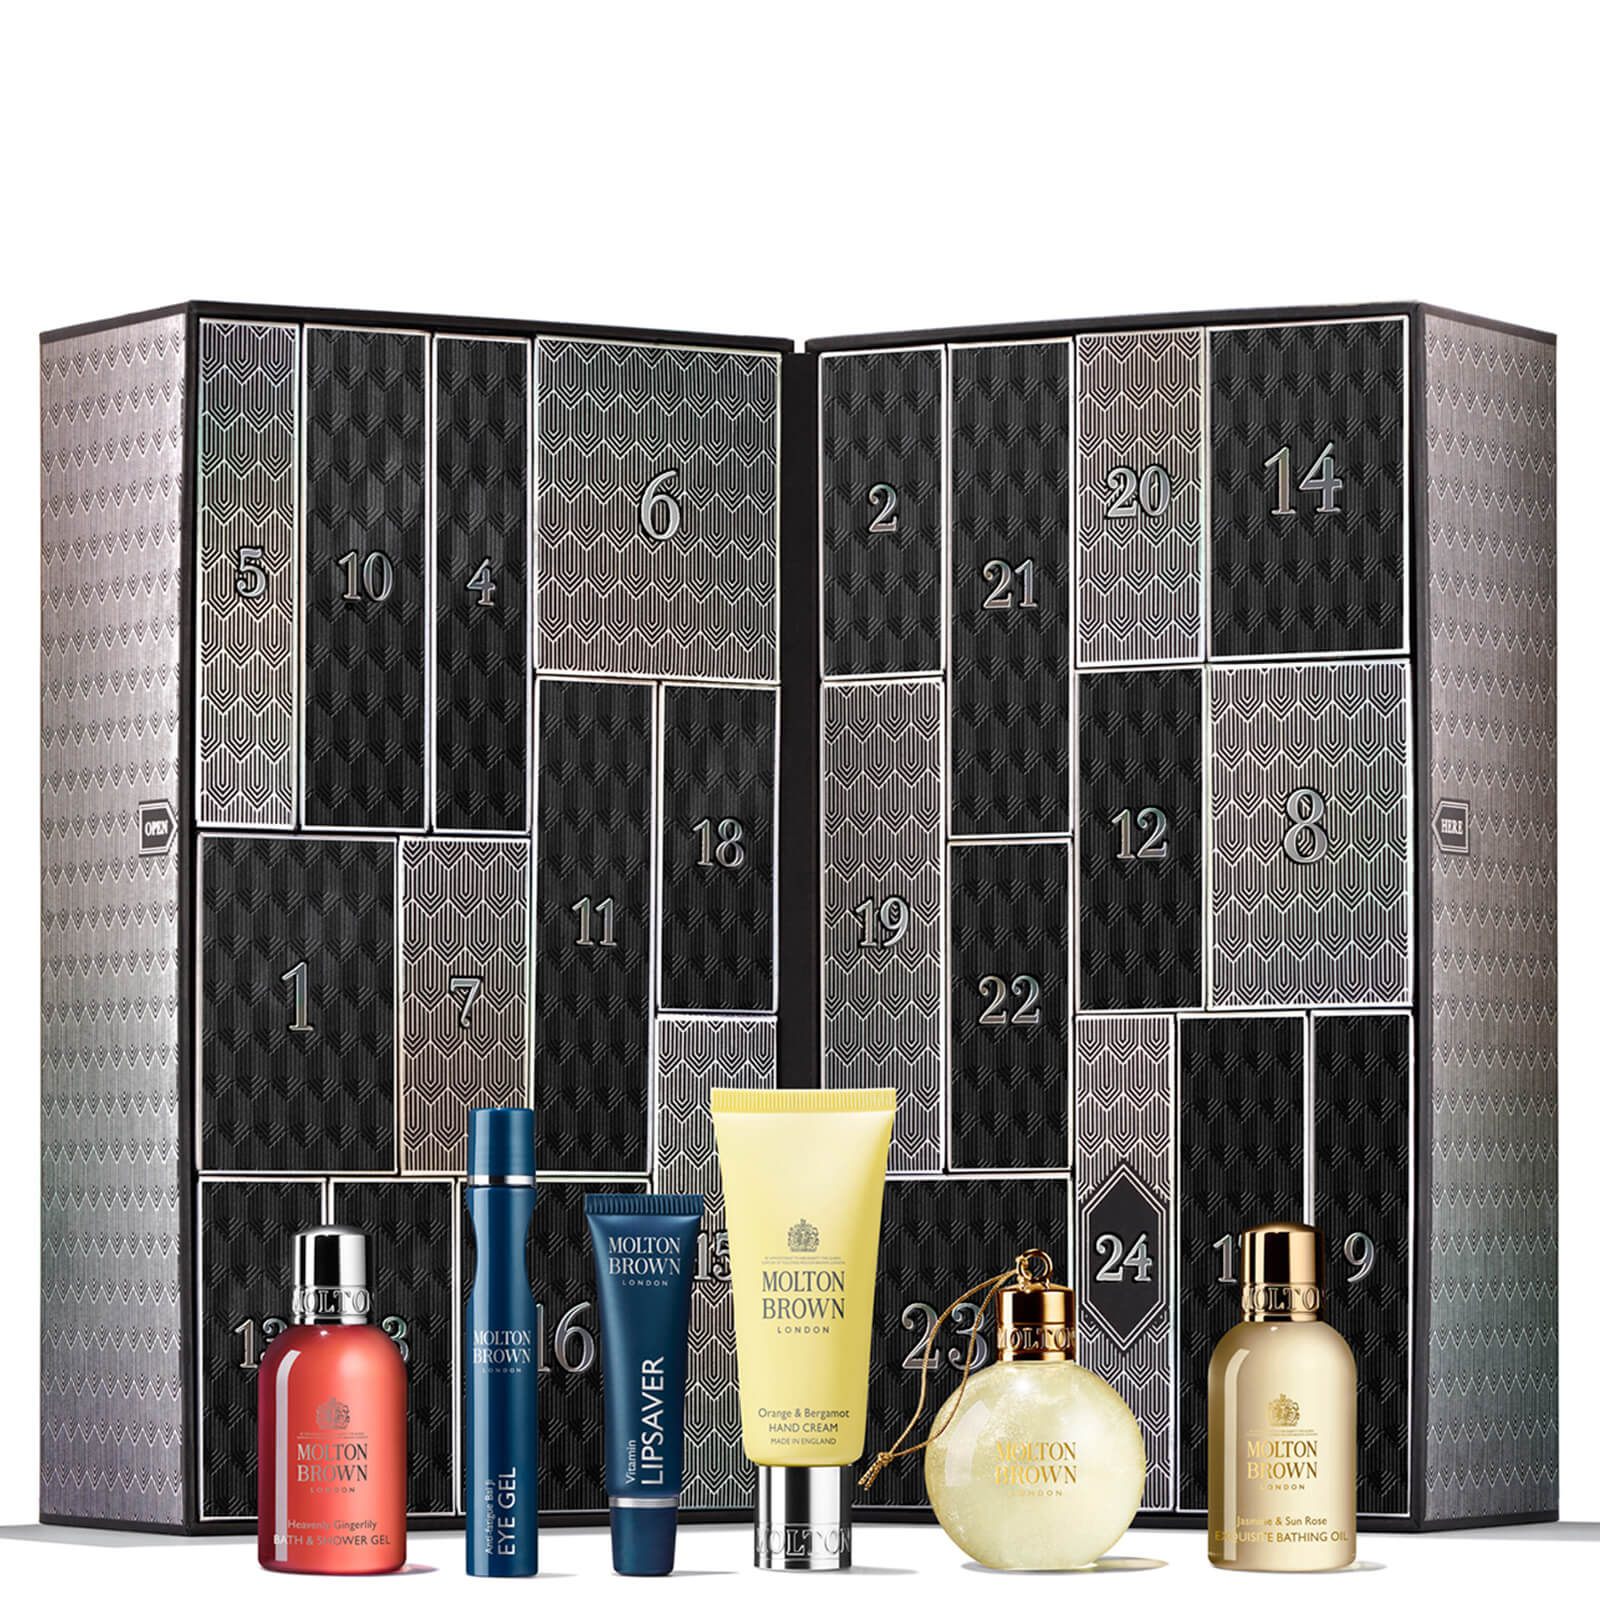 Molton Brown Adventskalender 2020 Inhalt